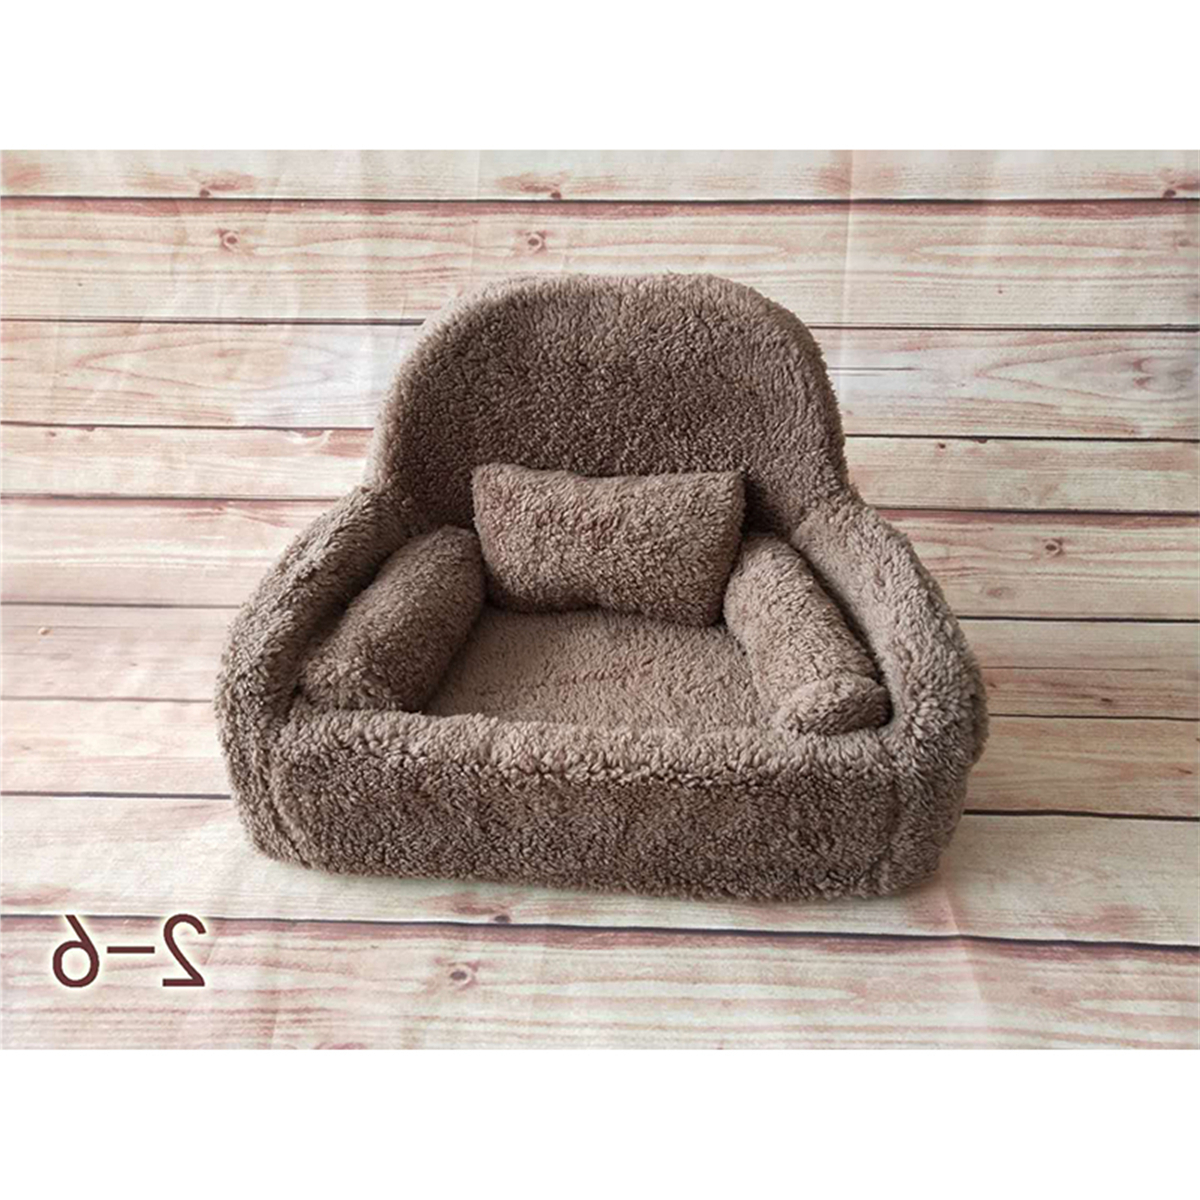 Details Zu Newborn Baby Photo Props Small Sofa Seat With 3 Cushions Photography Pose Shoot With Fashionable Tripp Sofas With Cushions (View 22 of 25)